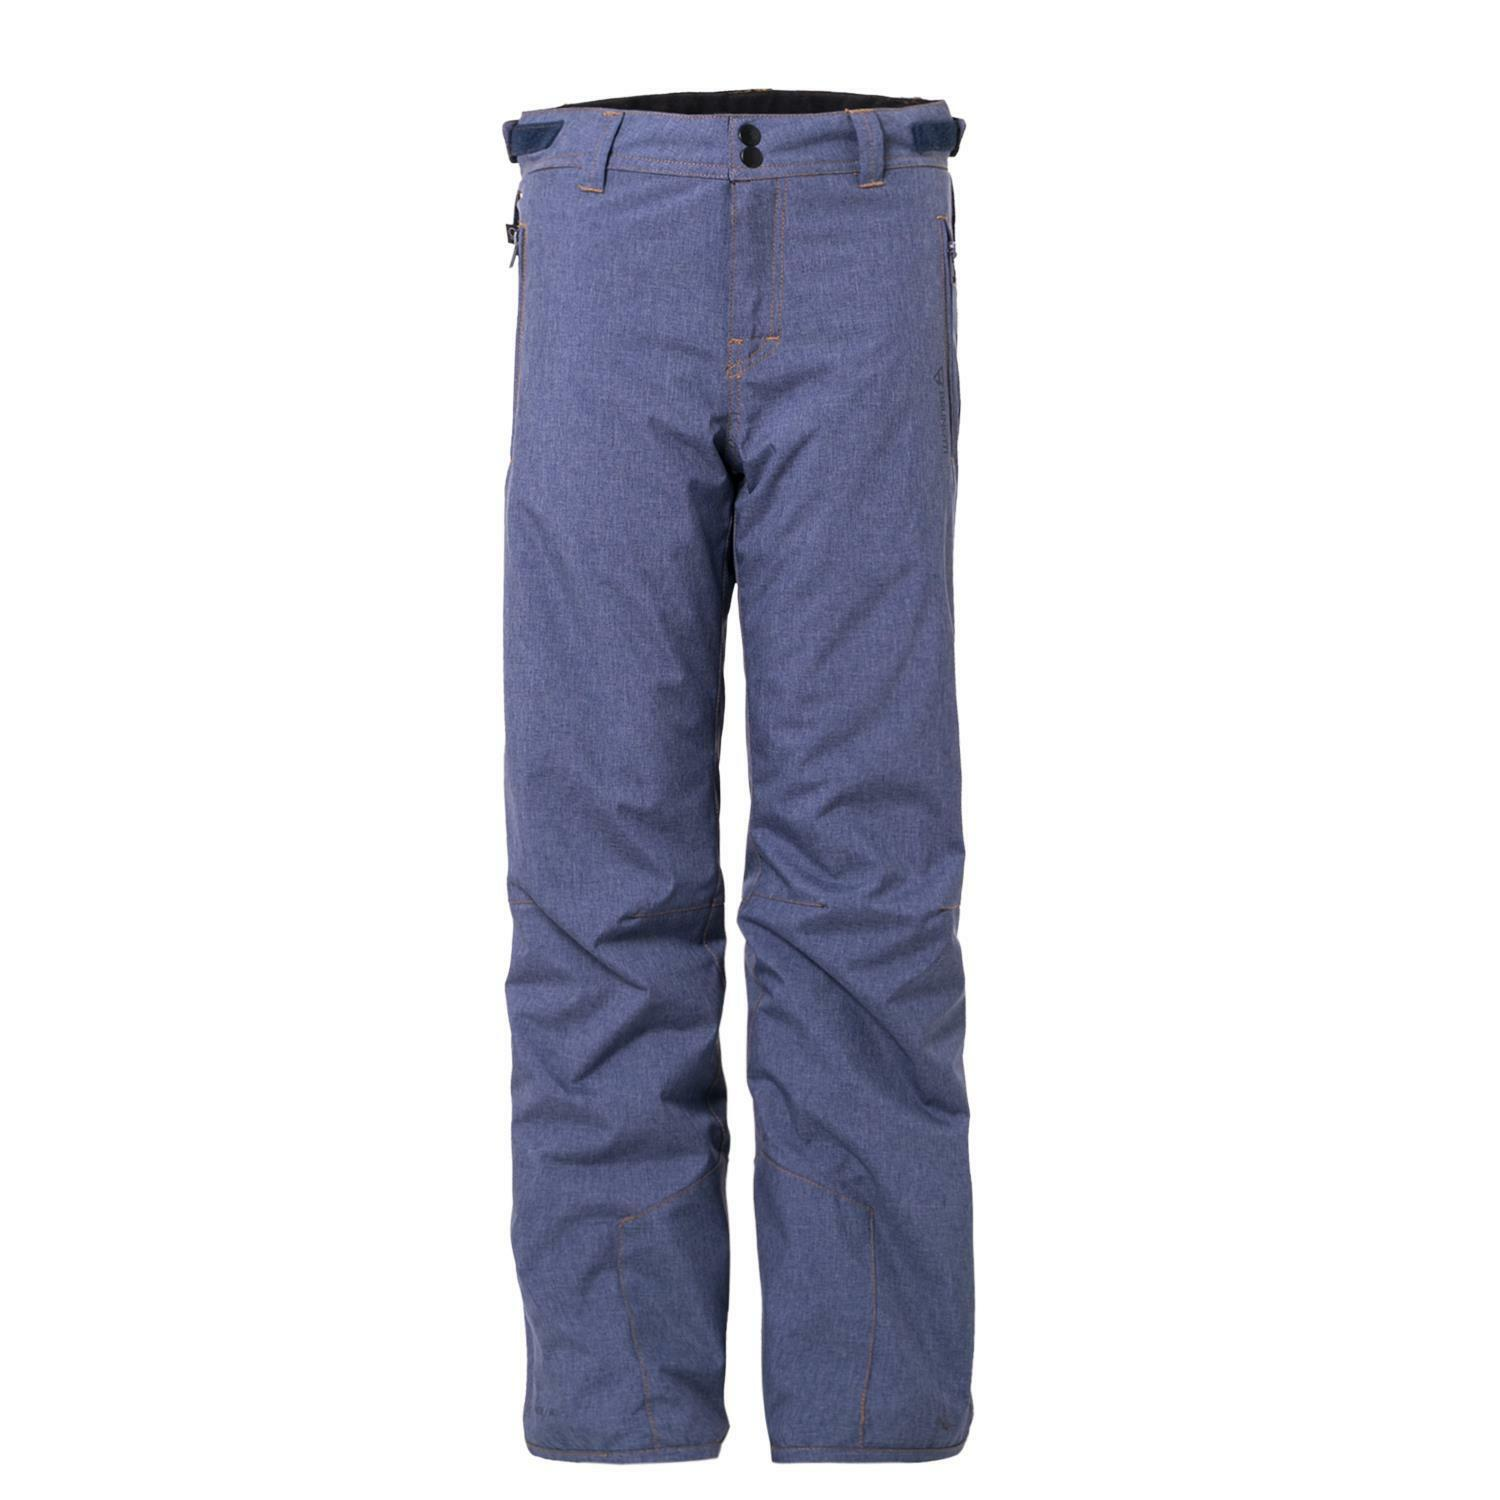 Brunotti  Ski Trousers Snowboard Trousers kitebar JR Melange Boys Snowpants bluee  new exclusive high-end